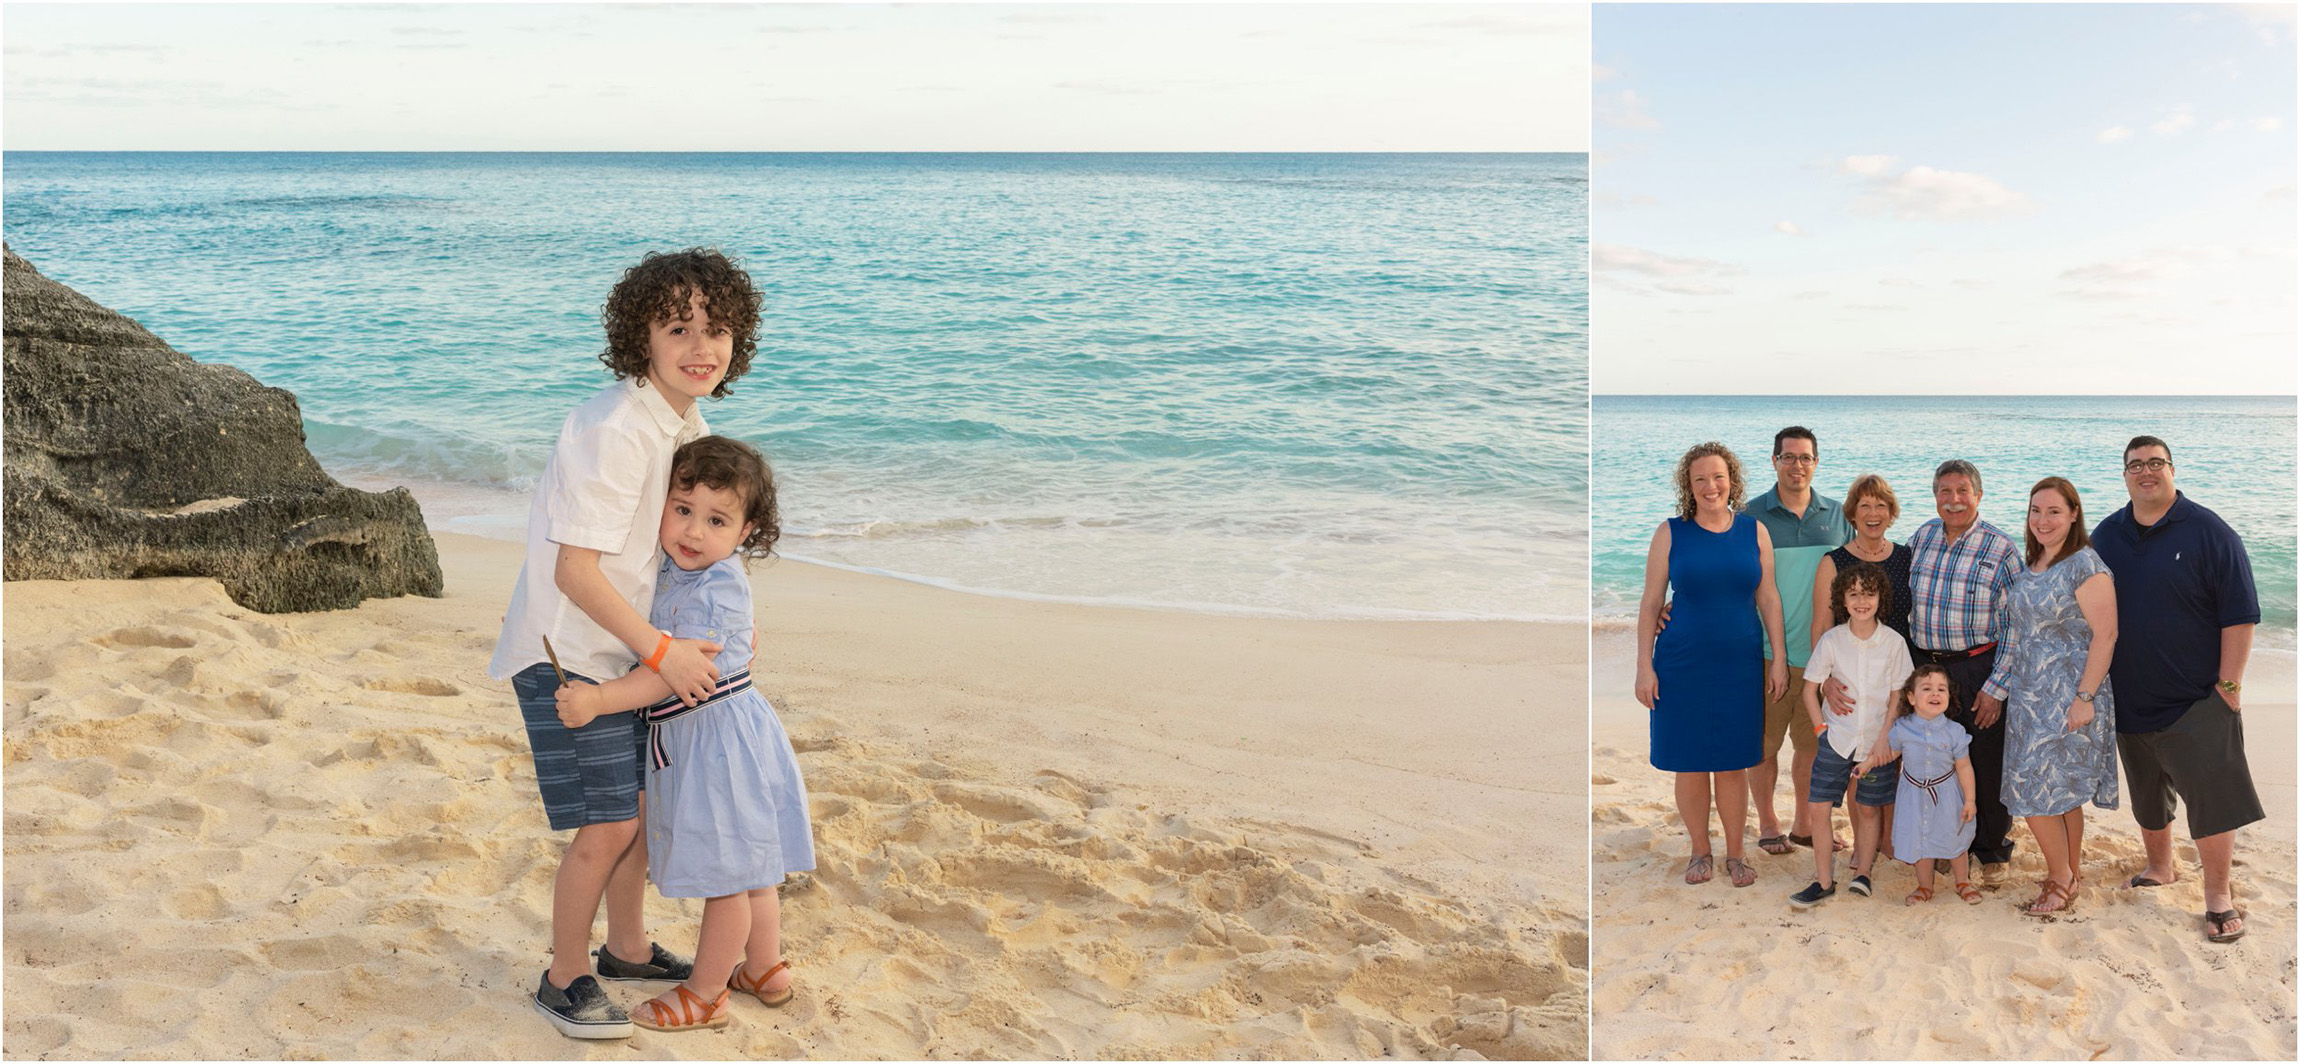 ©FianderFoto_Bermuda Photographer_Church Bay Park_Ashley_Family_003.jpg